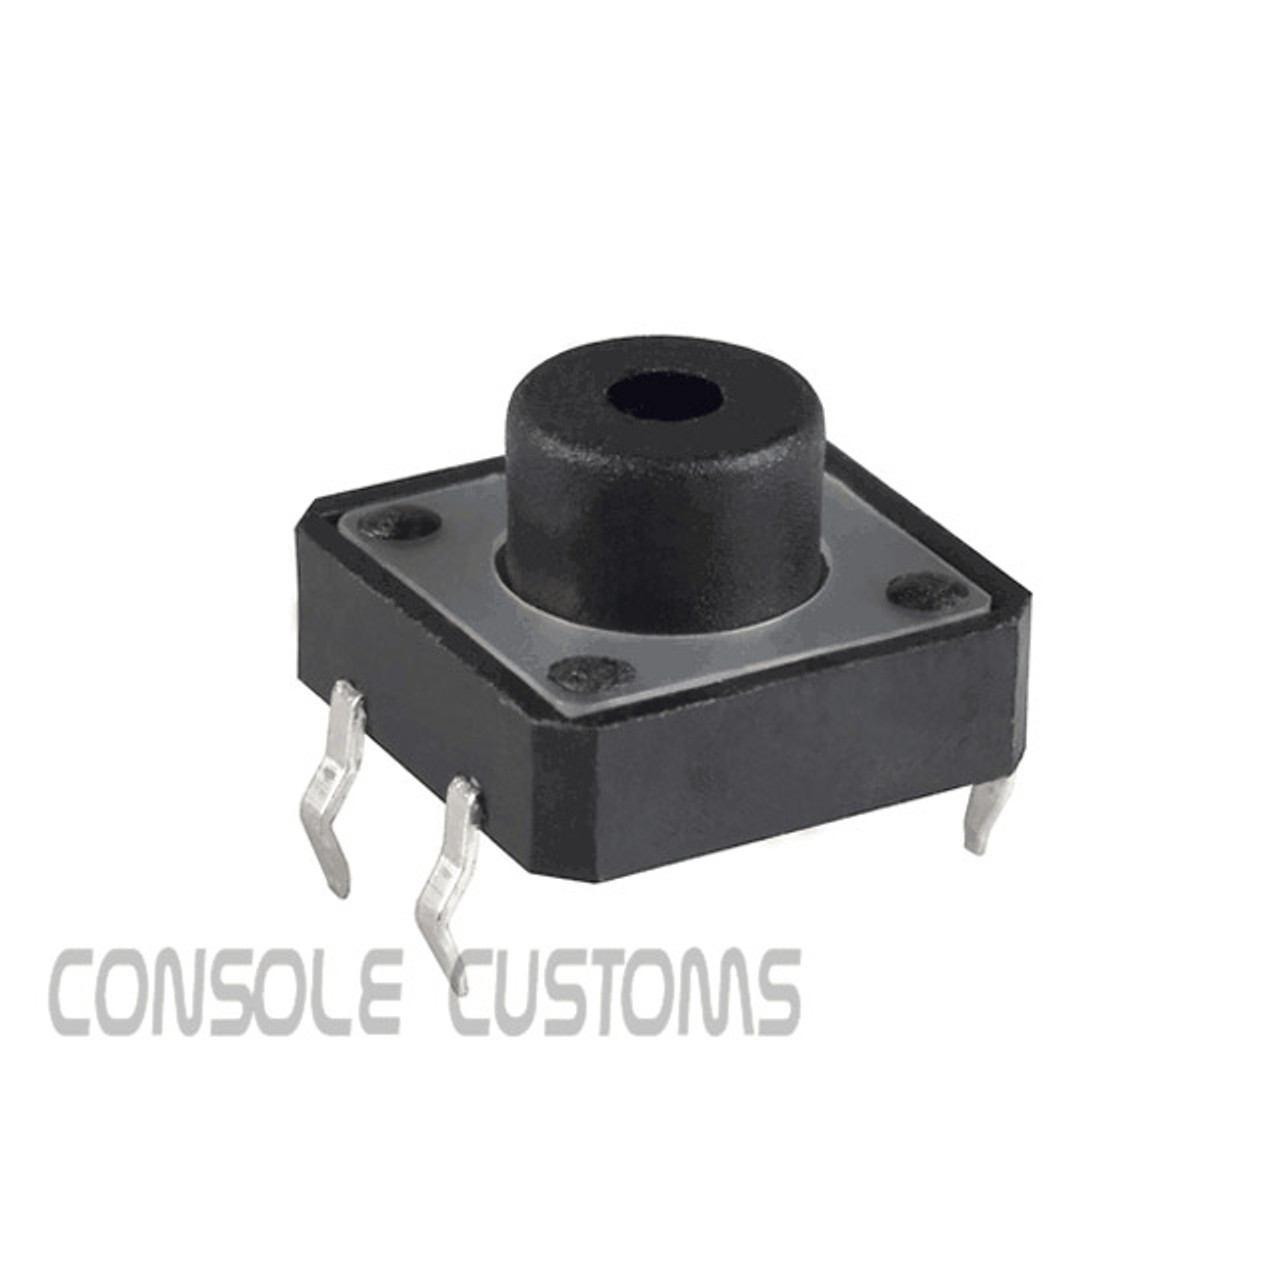 12x12mm Tactile Switch/button Black